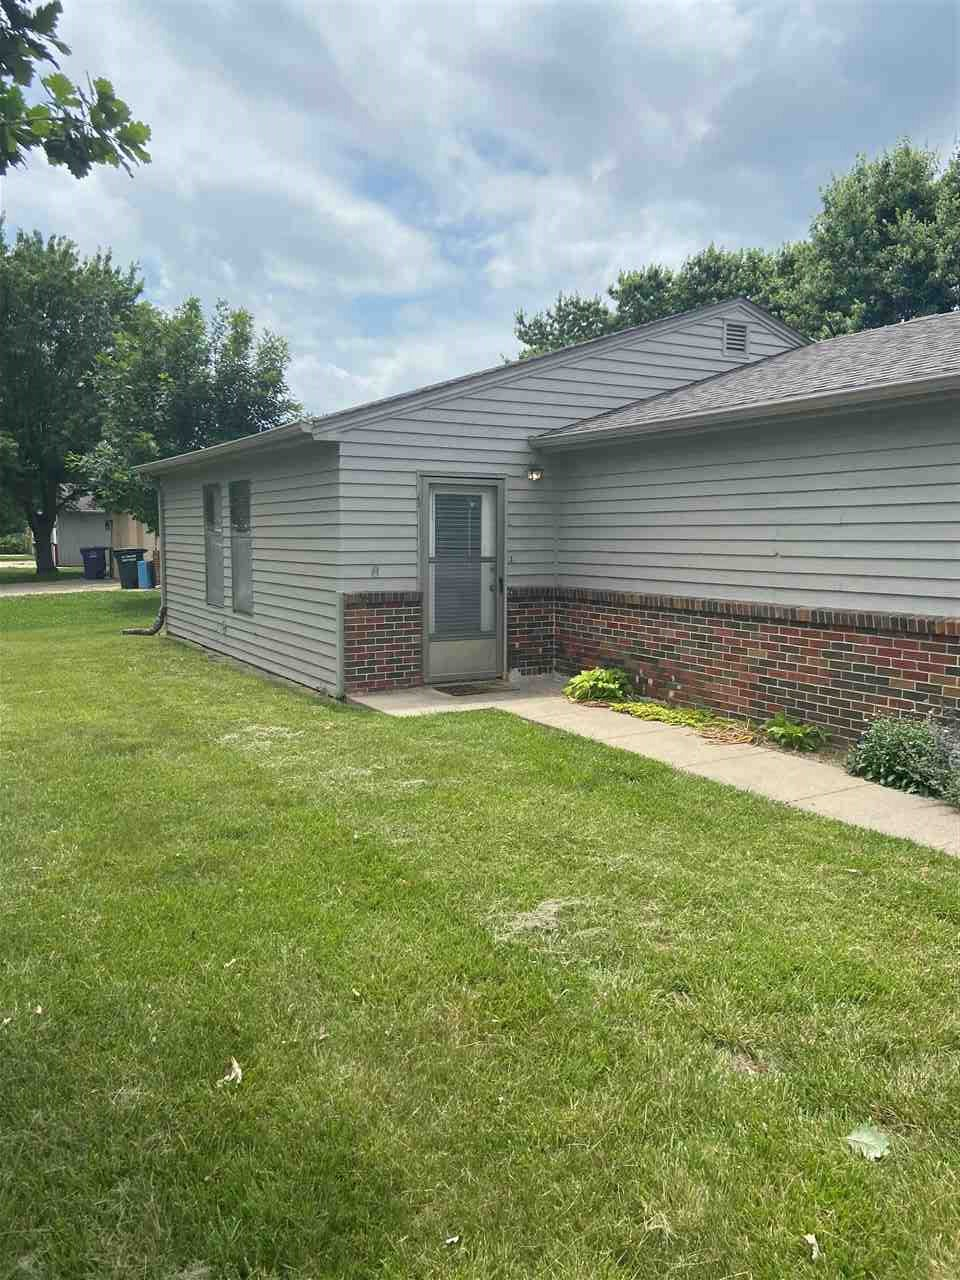 Great investment property with excellent rental history